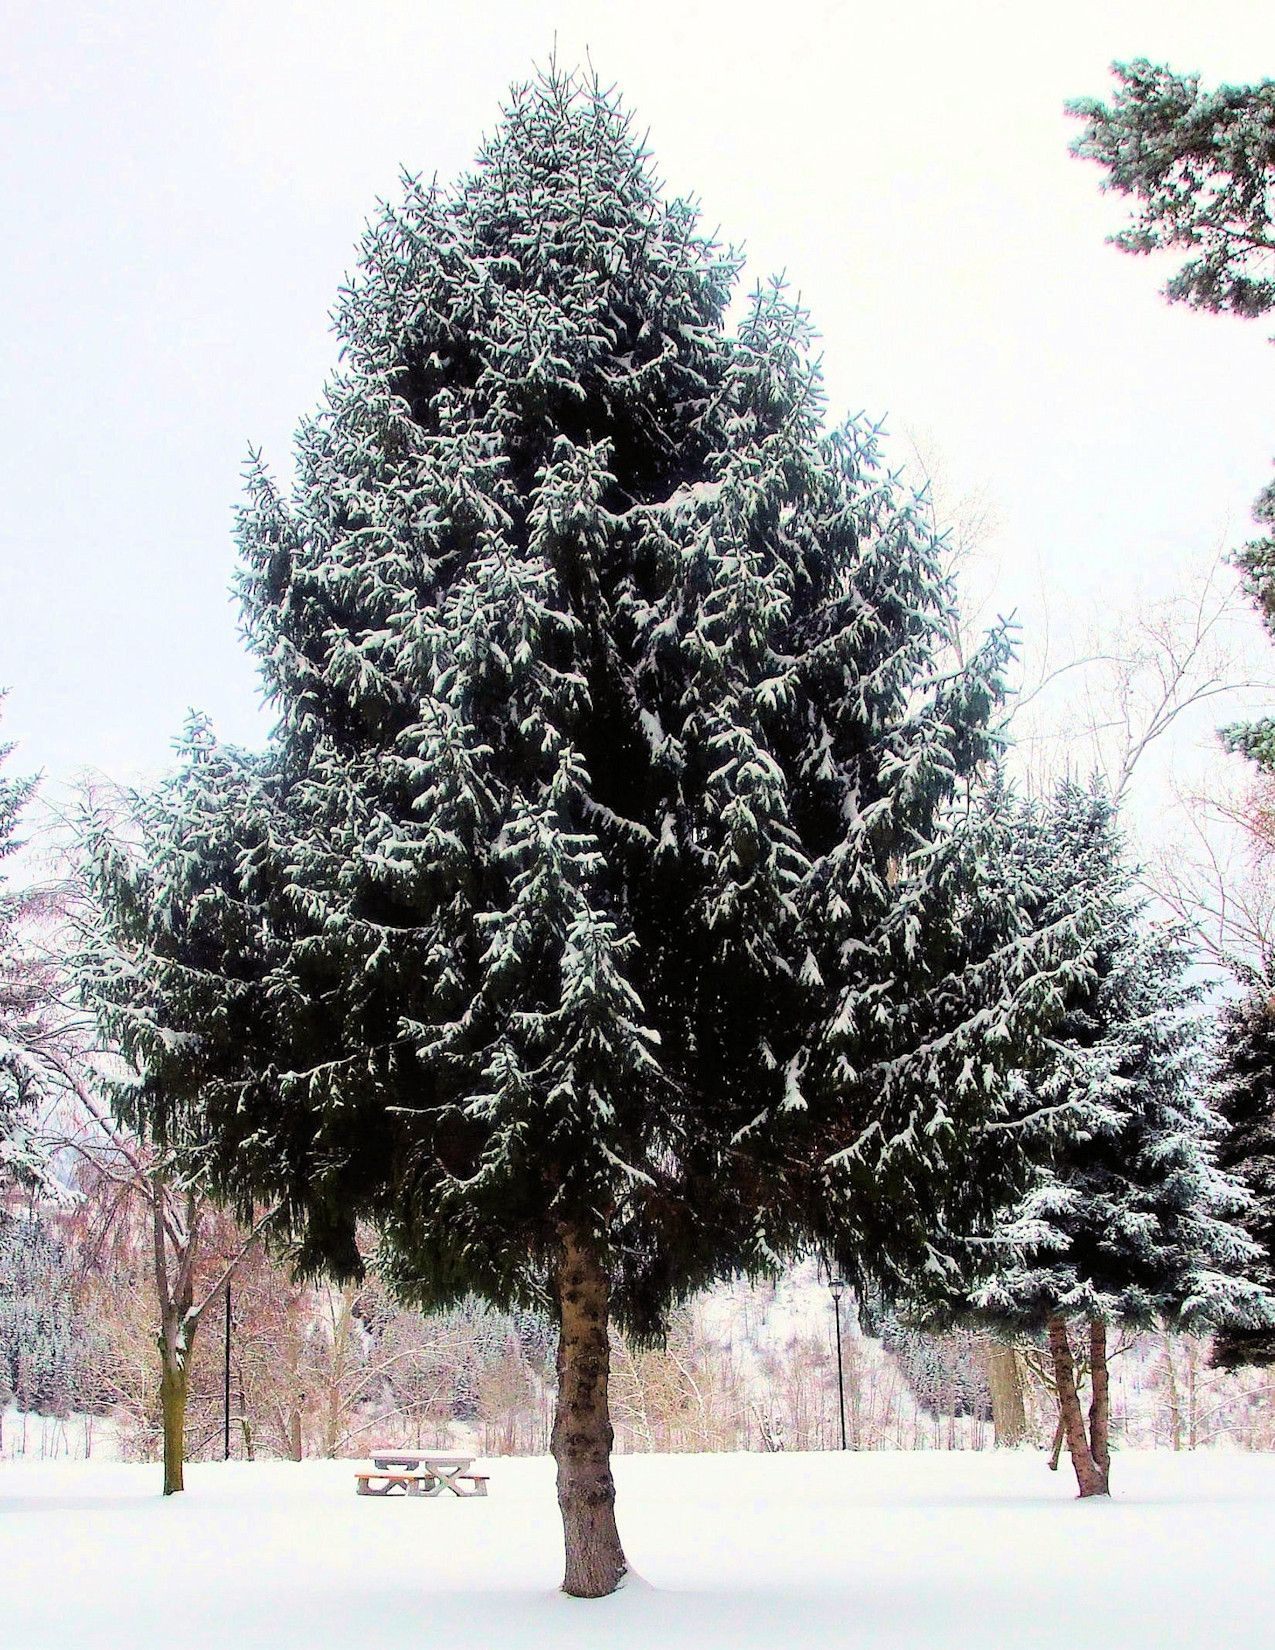 Evergreens And Snow 3: A single, well-shaped evergreen tree dusted with snow